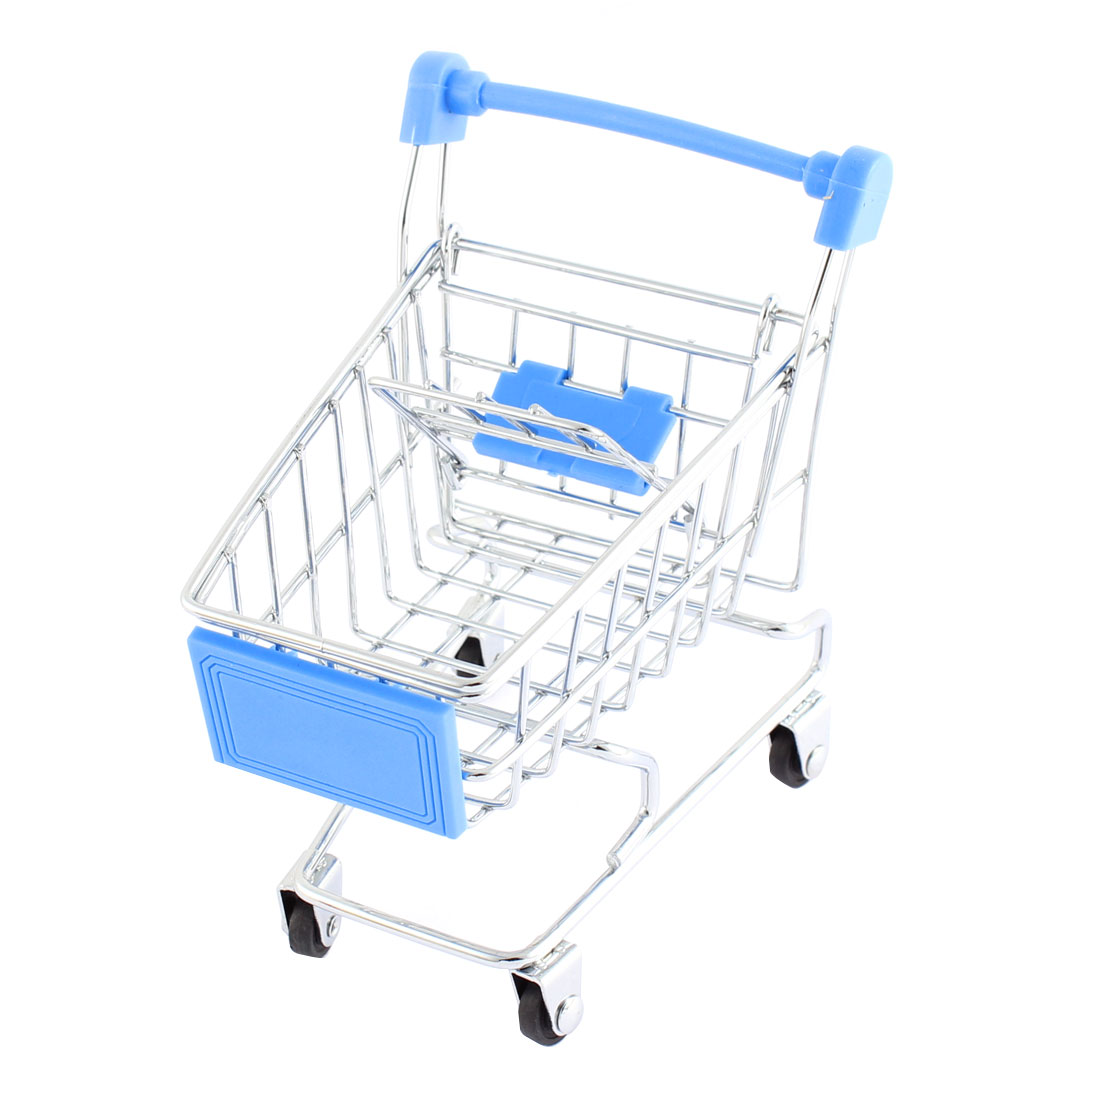 Movable Stainless Steel Shopping Cart Toy Container Silver Tone Light Blue